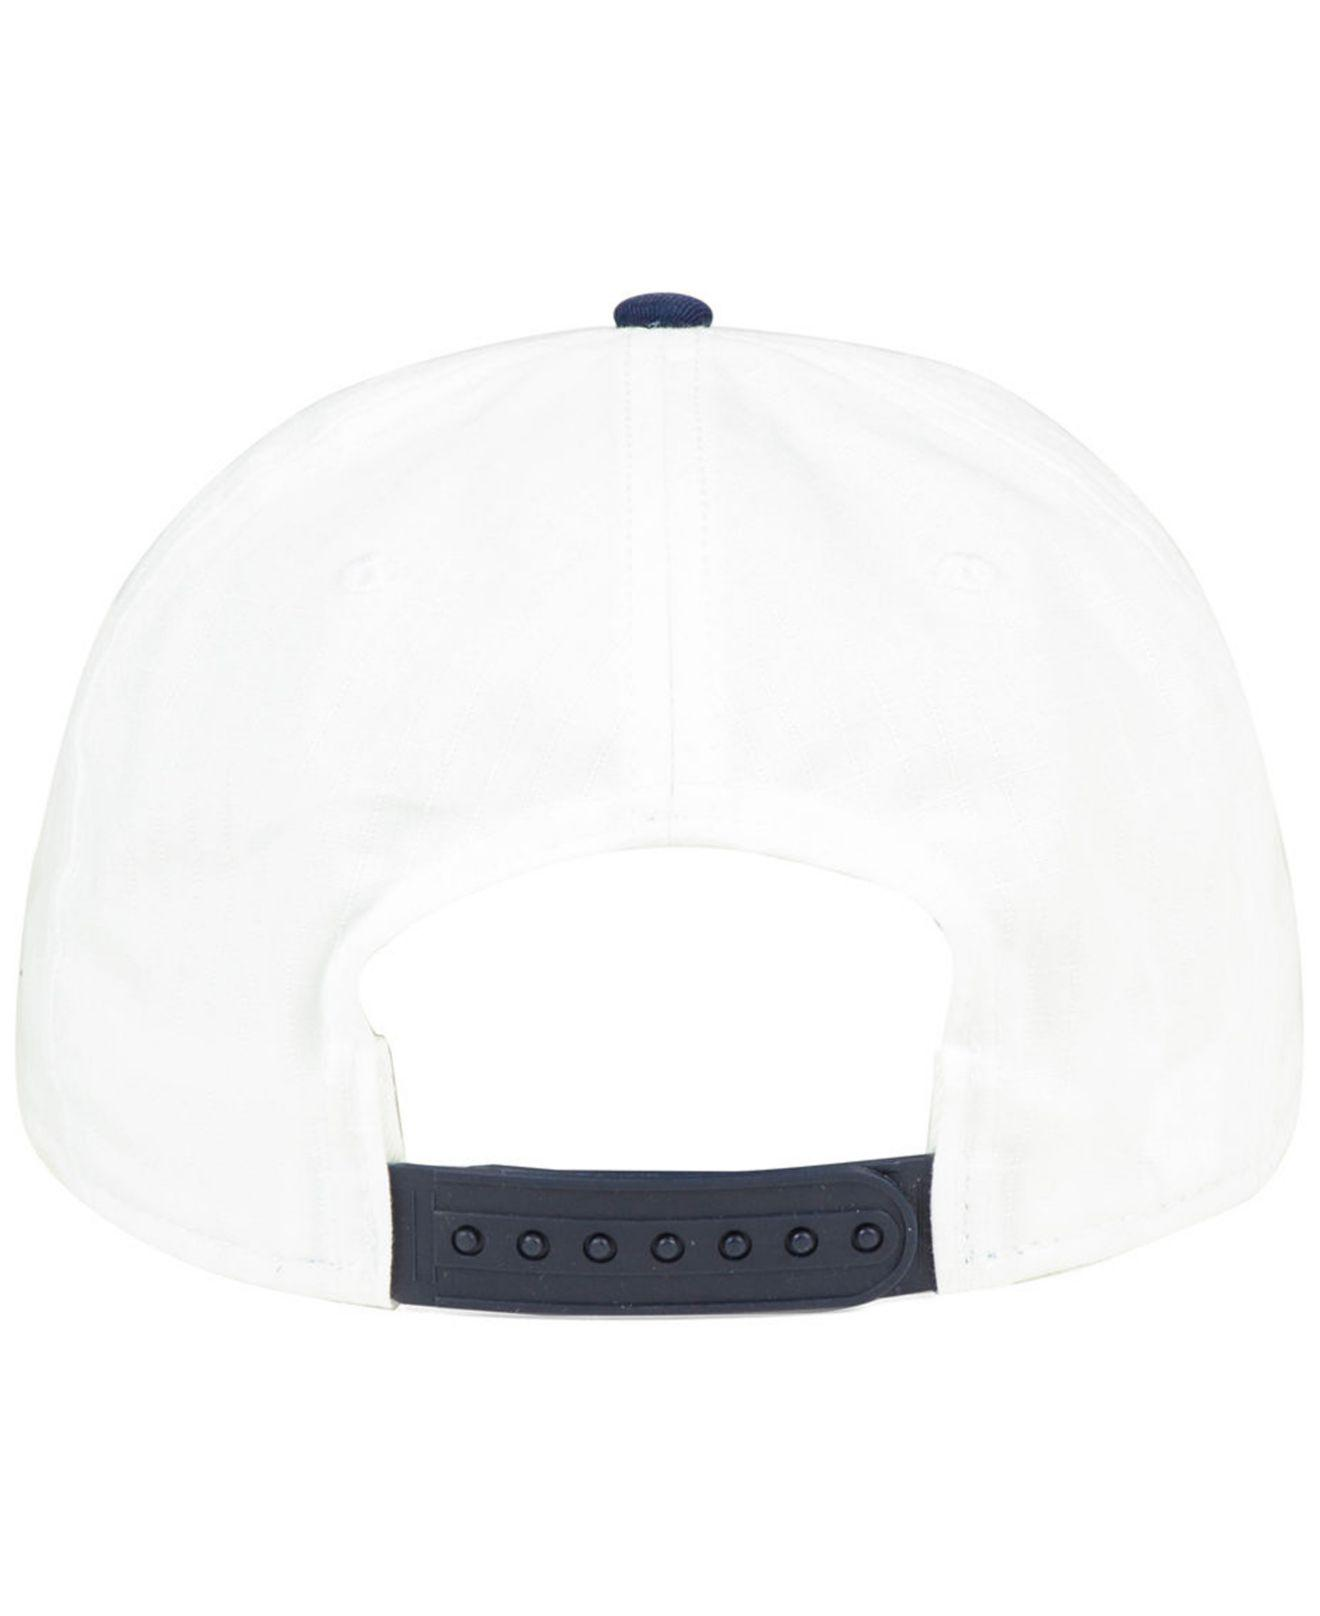 a137866ab1b ... discount nike cleveland indians white ripstop snapback cap for men lyst.  view fullscreen 41d05 780bc